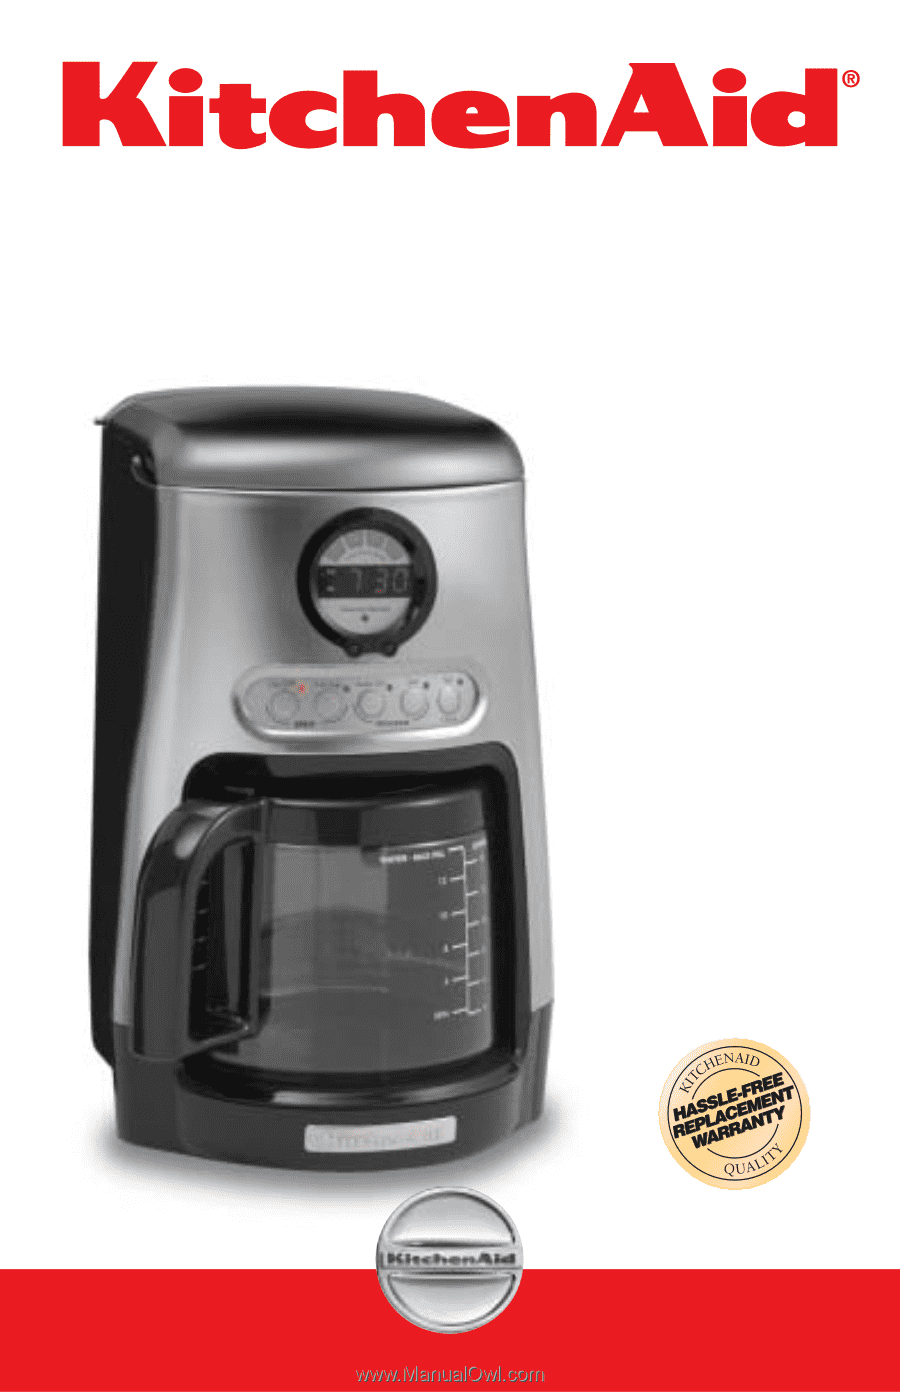 Coffee Maker With Copper Heating Element : KitchenAid KCM515 Instruction Manual